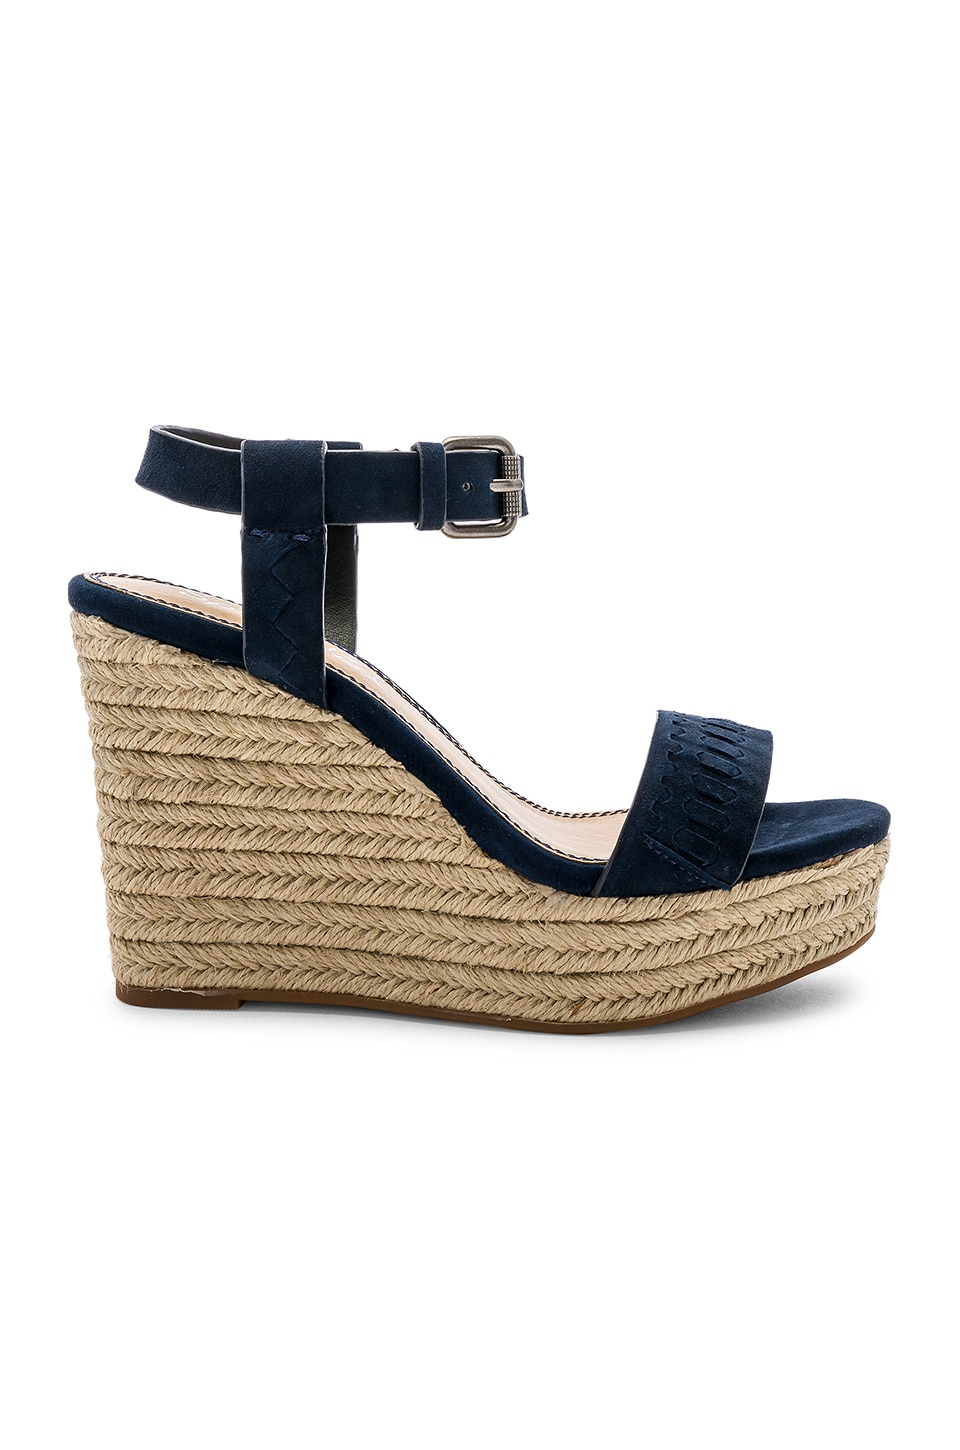 SPLENDID Women'S Shayla Suede Espadrille Wedge Heel Sandals in Navy